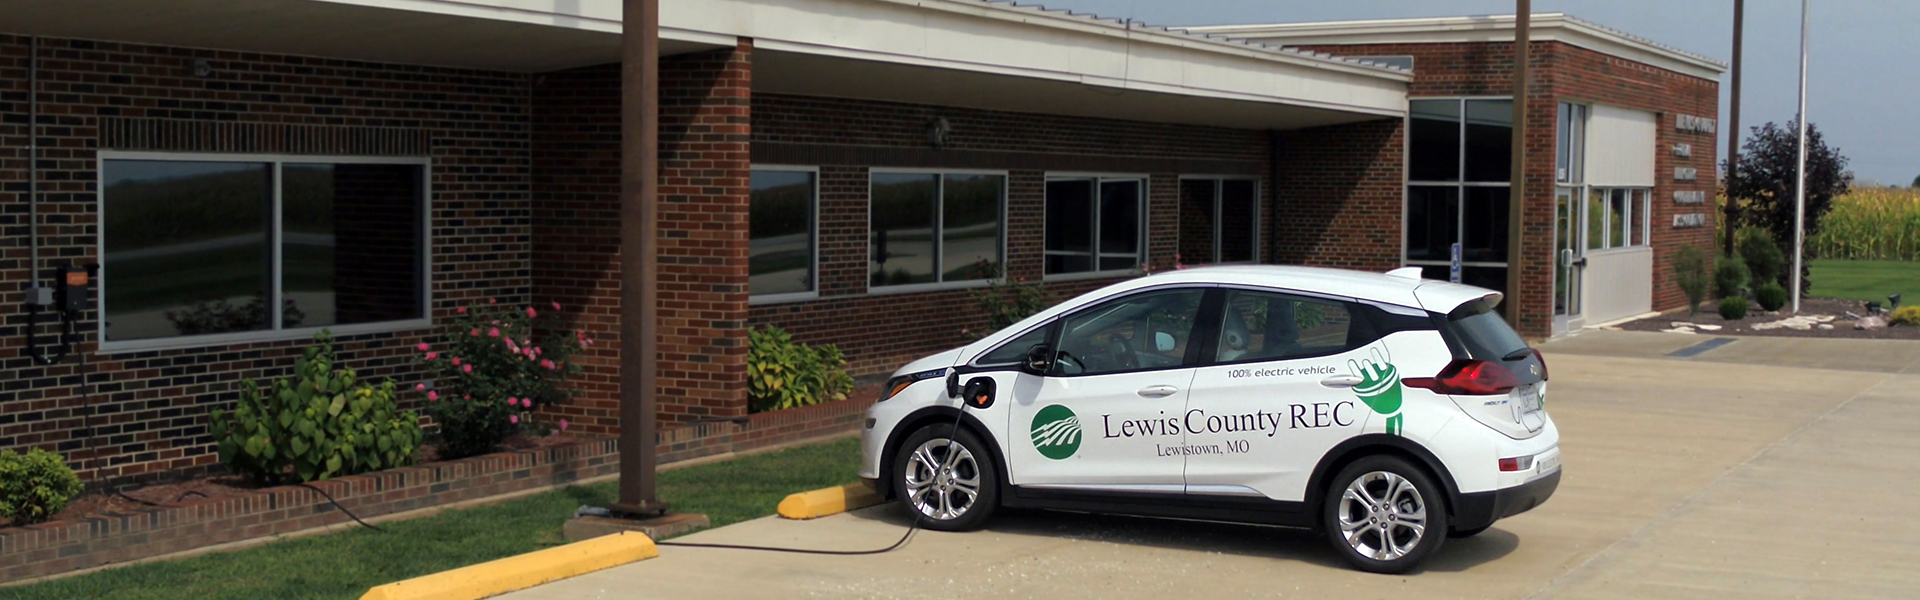 Lewis County REC Electric Vehicle